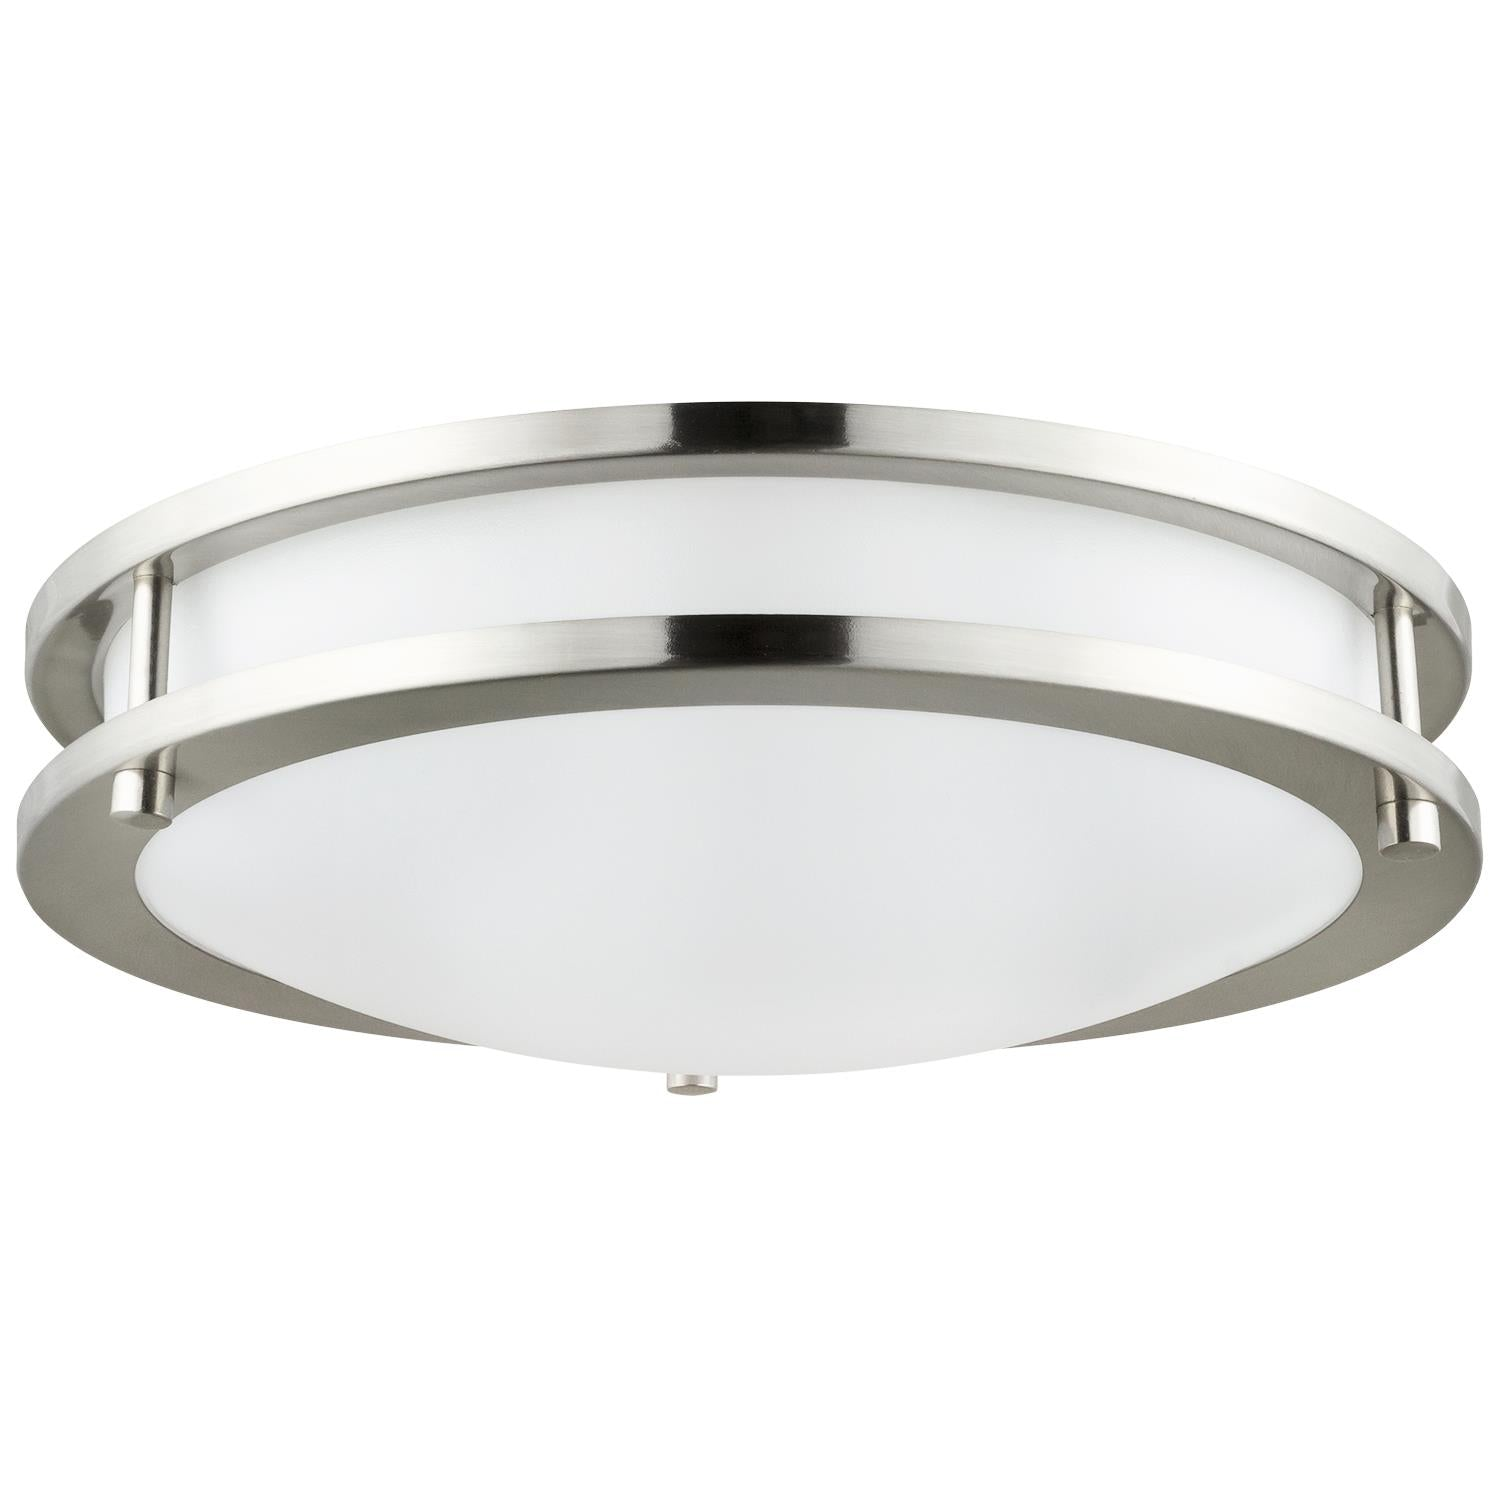 SUNLITE 21w Brushed Nickel Ceiling Light Fixture in Warm White 3000K